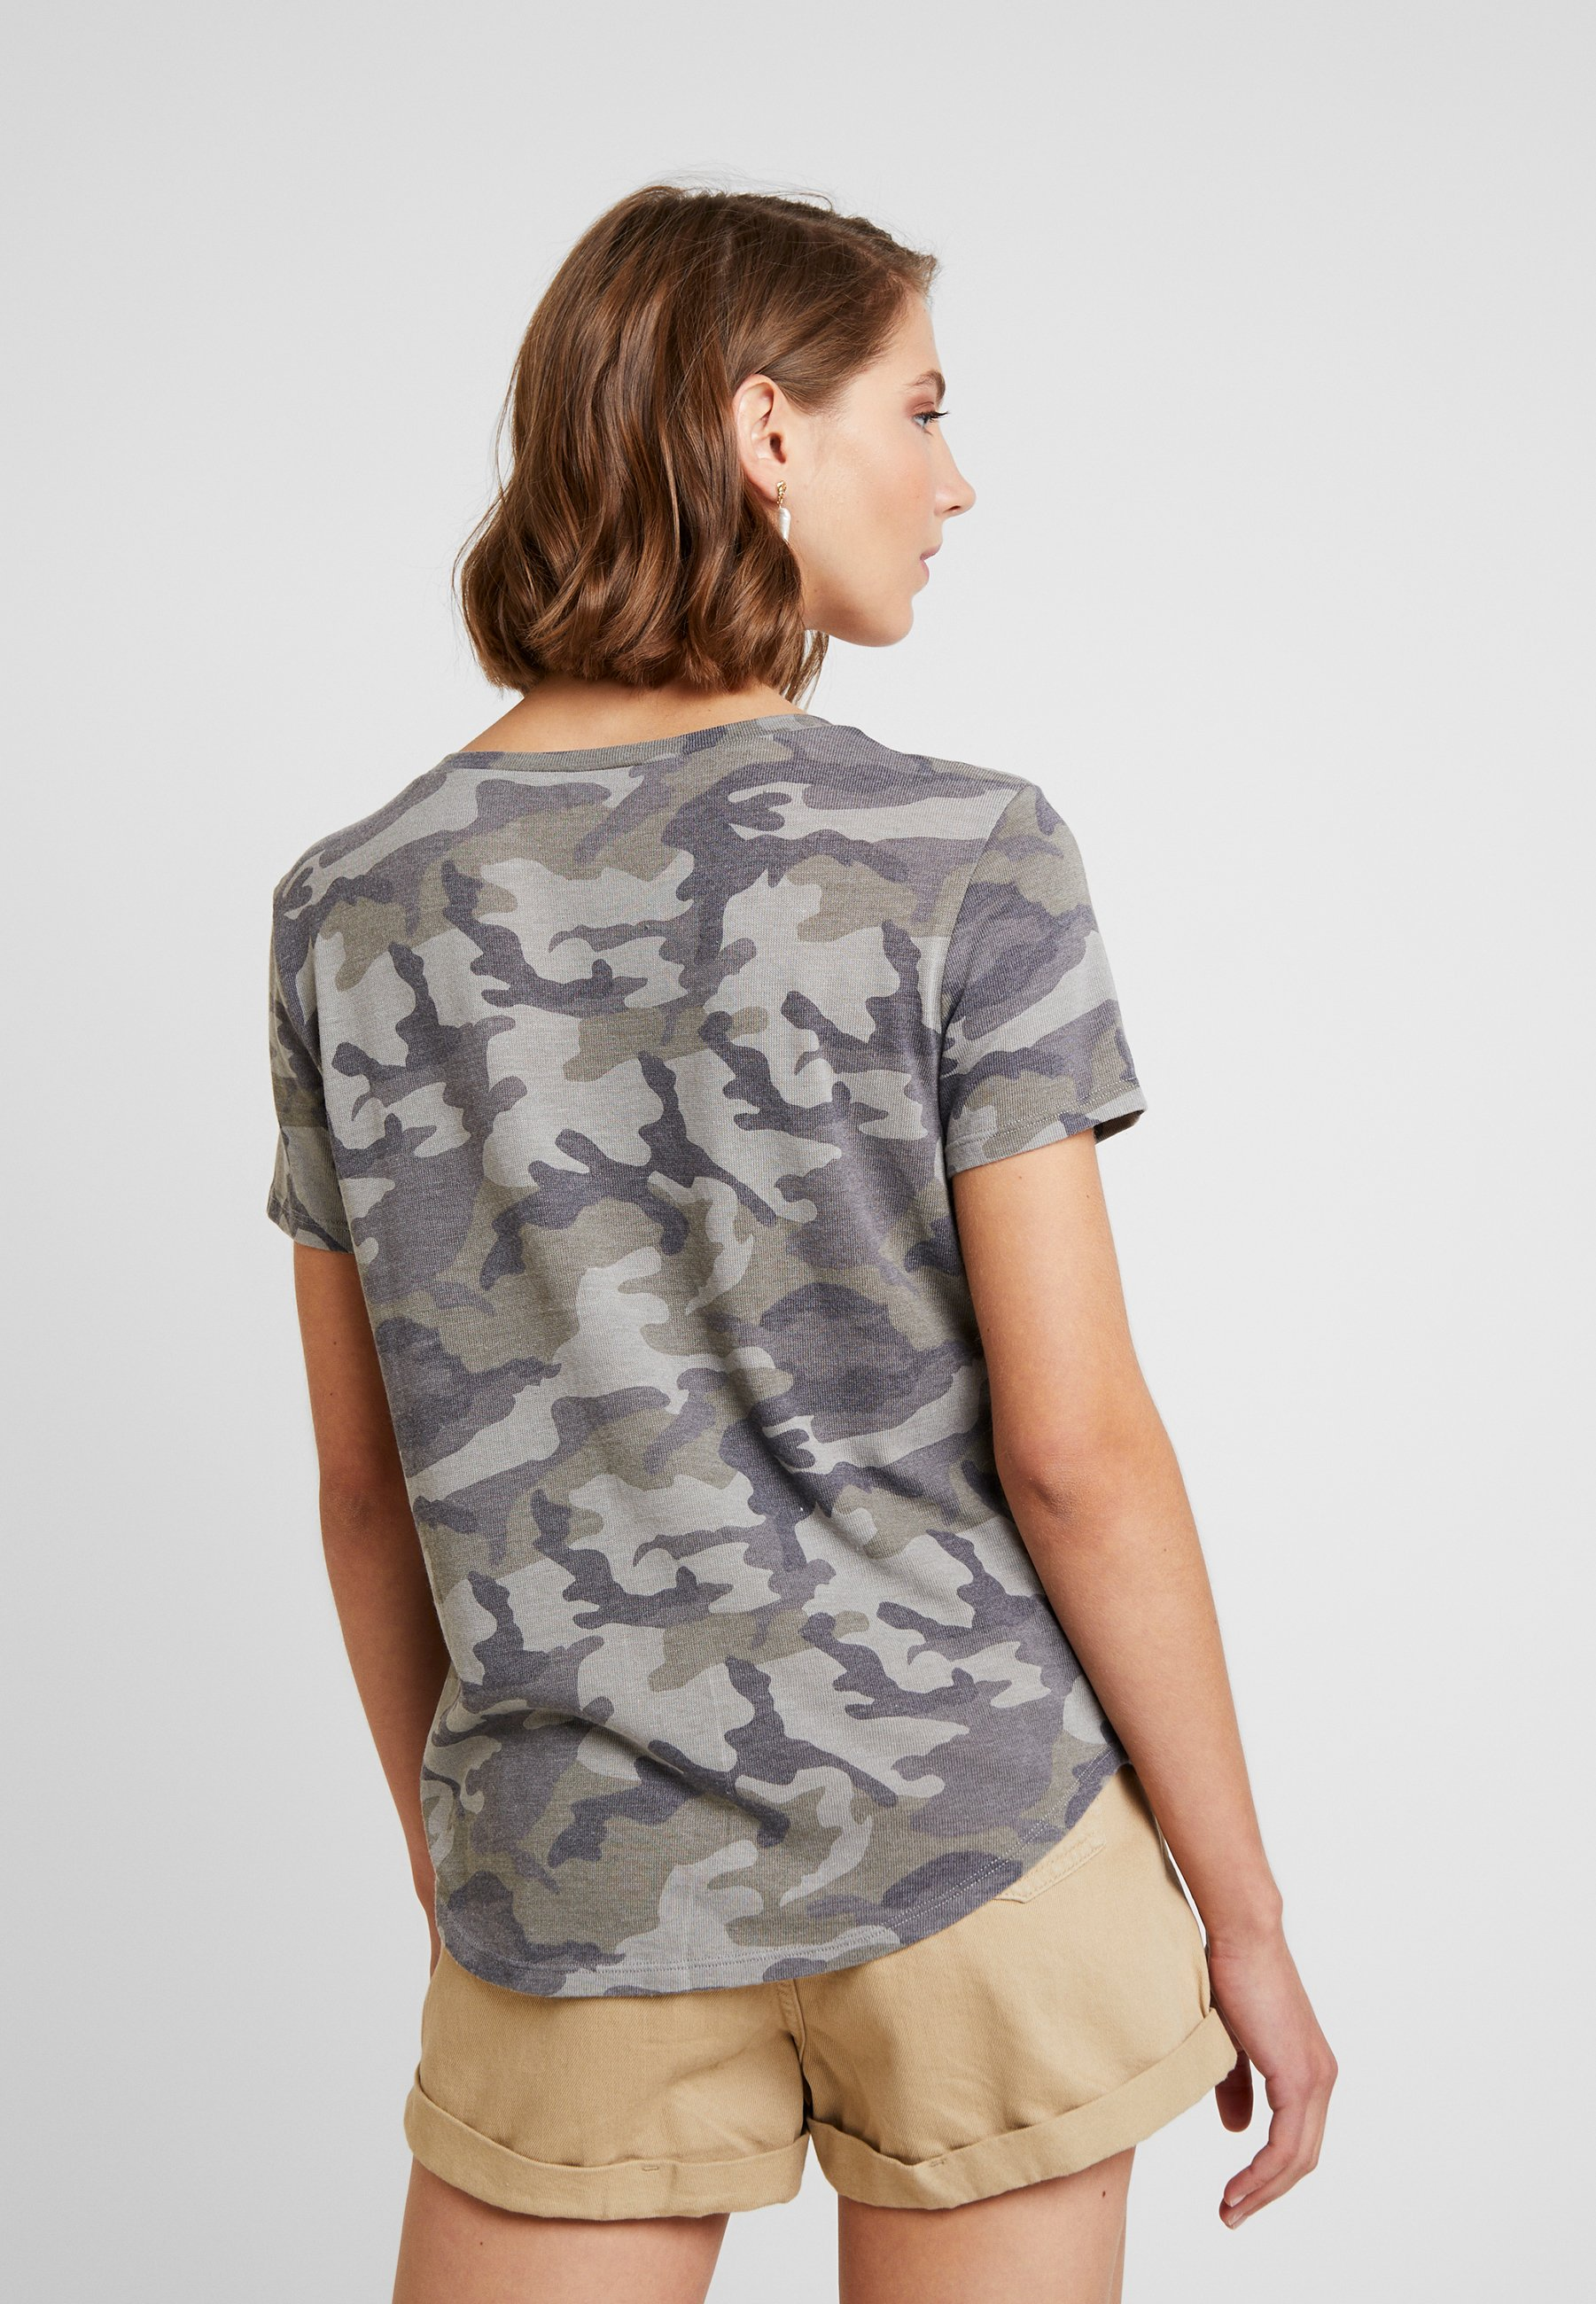 Favorite Eagle Tee Stampa Olive American Con CamoT shirt W2YEH9ID